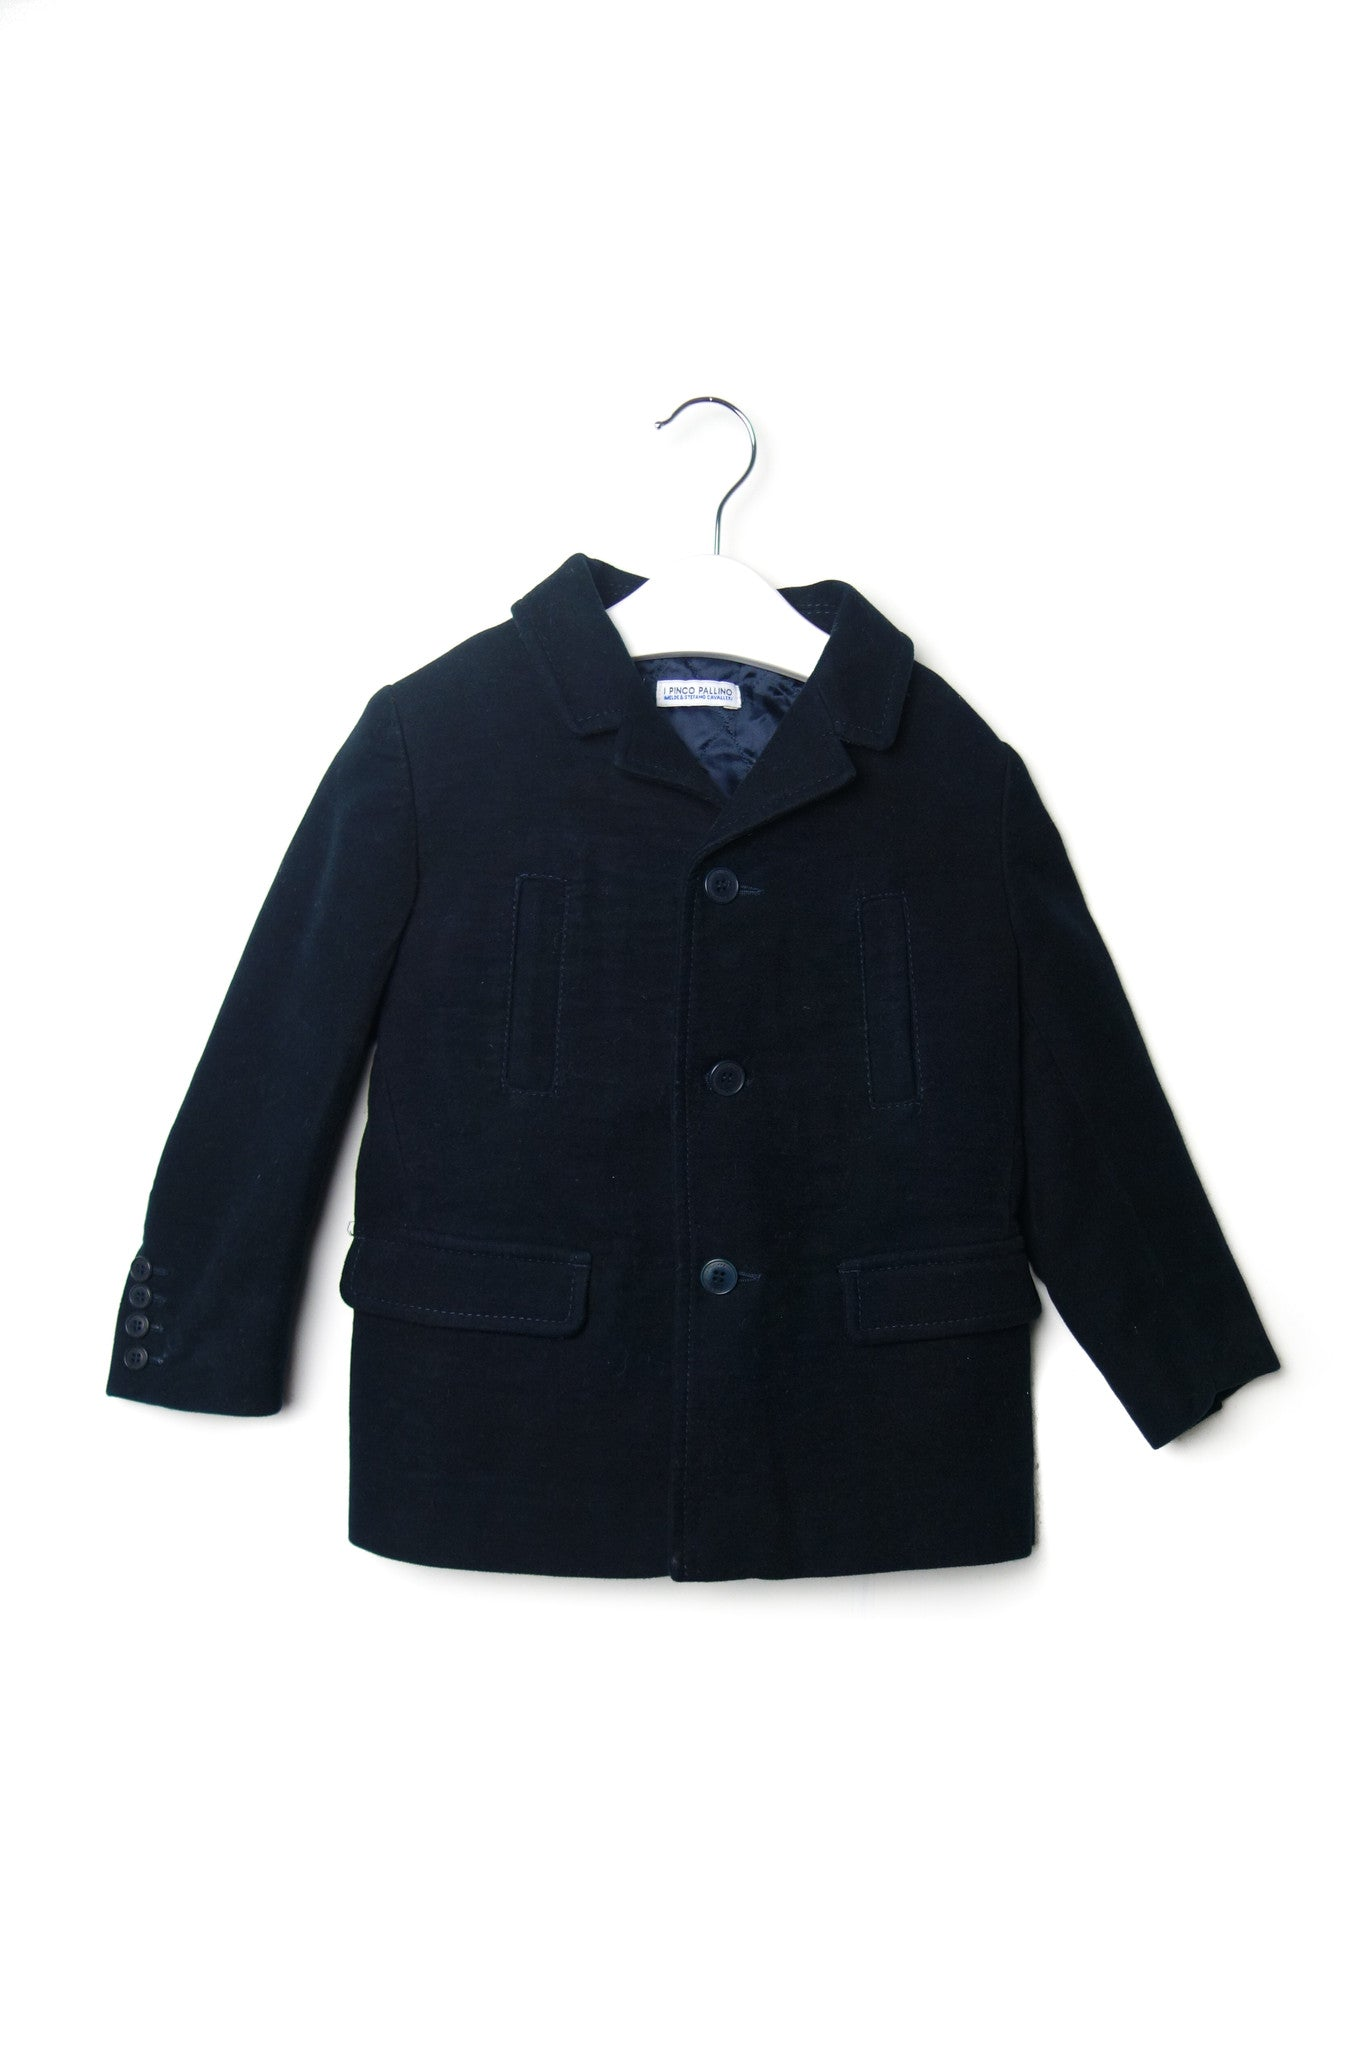 10001845 I Pinco Pallino Kids~Coat 2T at Retykle